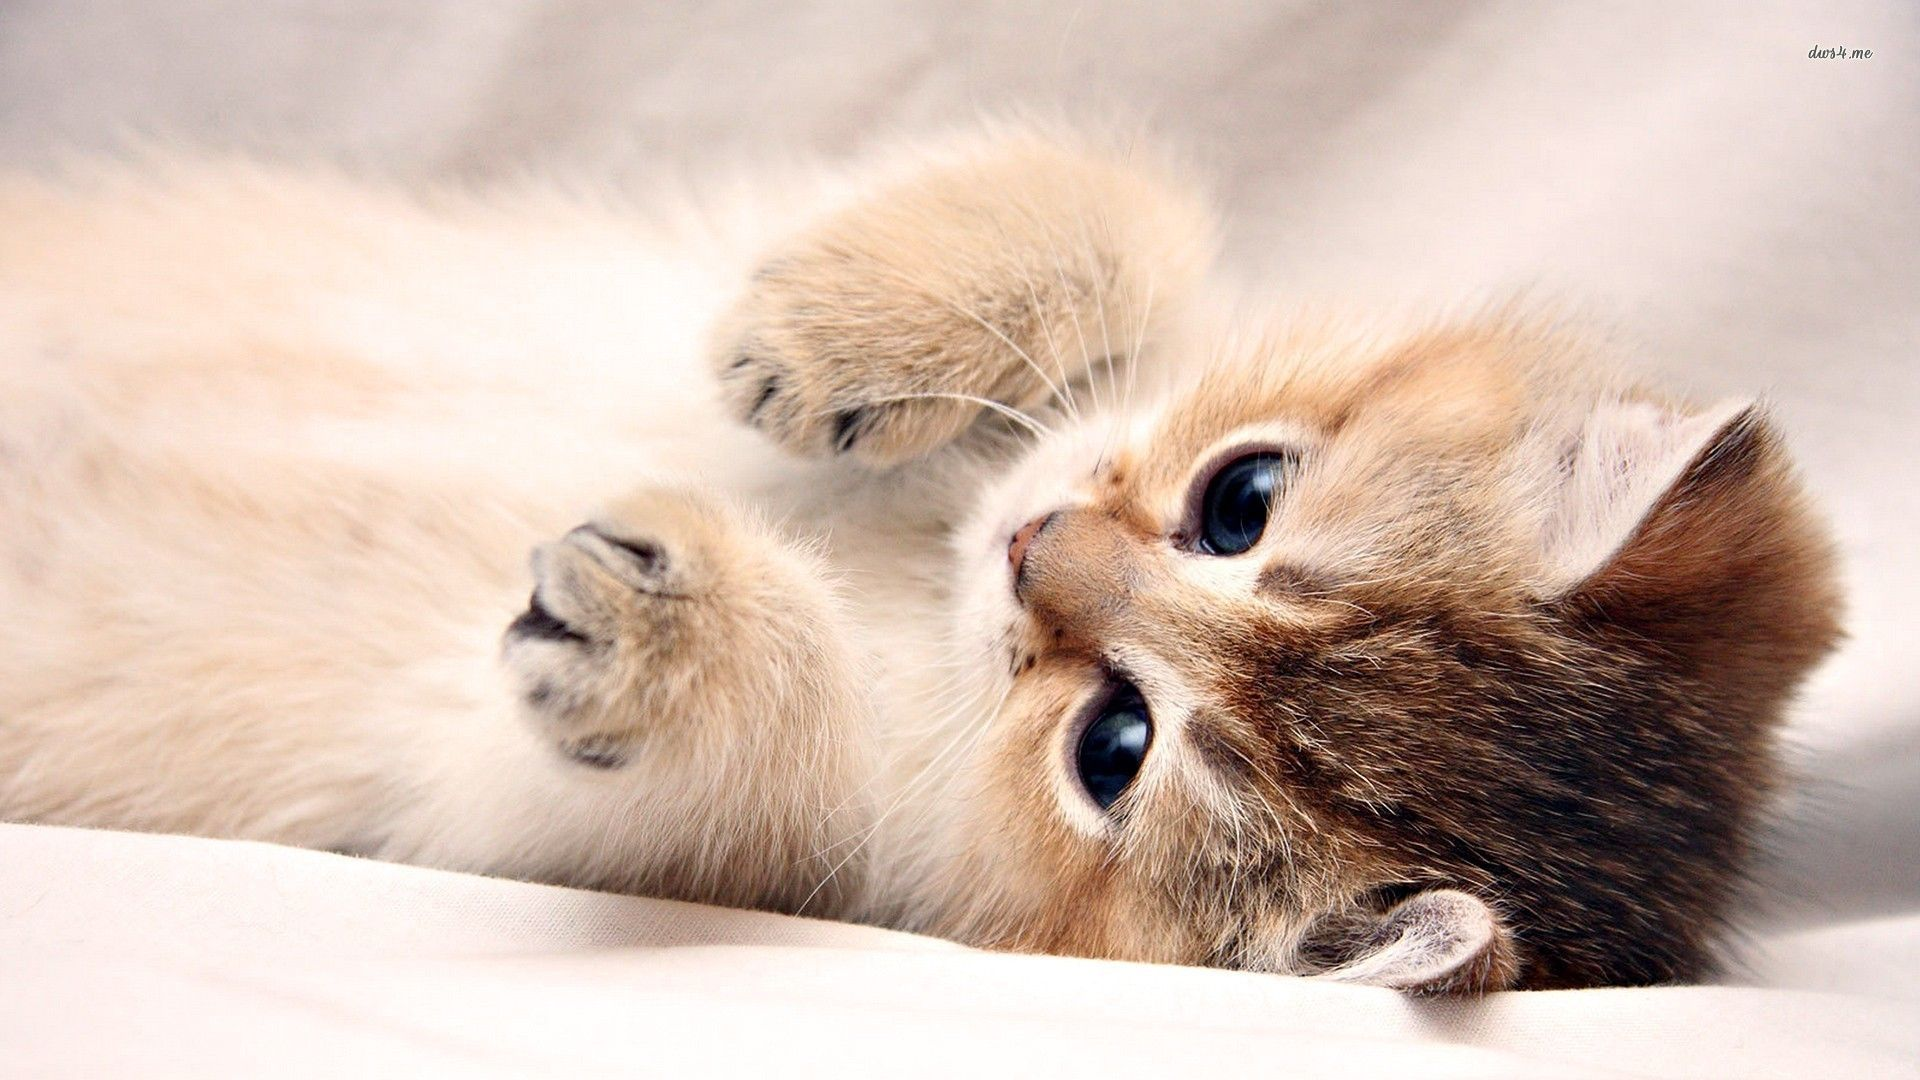 Kitten wallpaper 1280x800 - Download Best HD Desktop ...